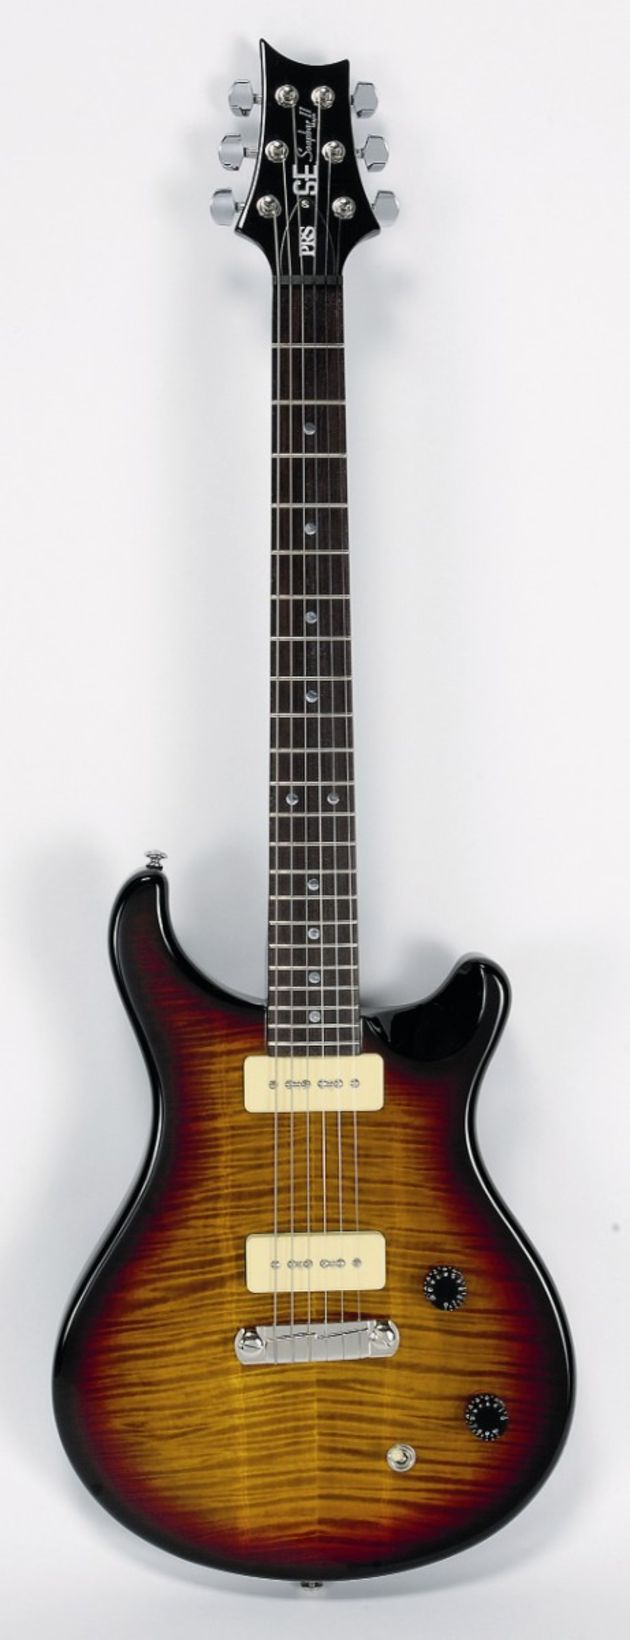 The PRS SE Soapbar II Maple